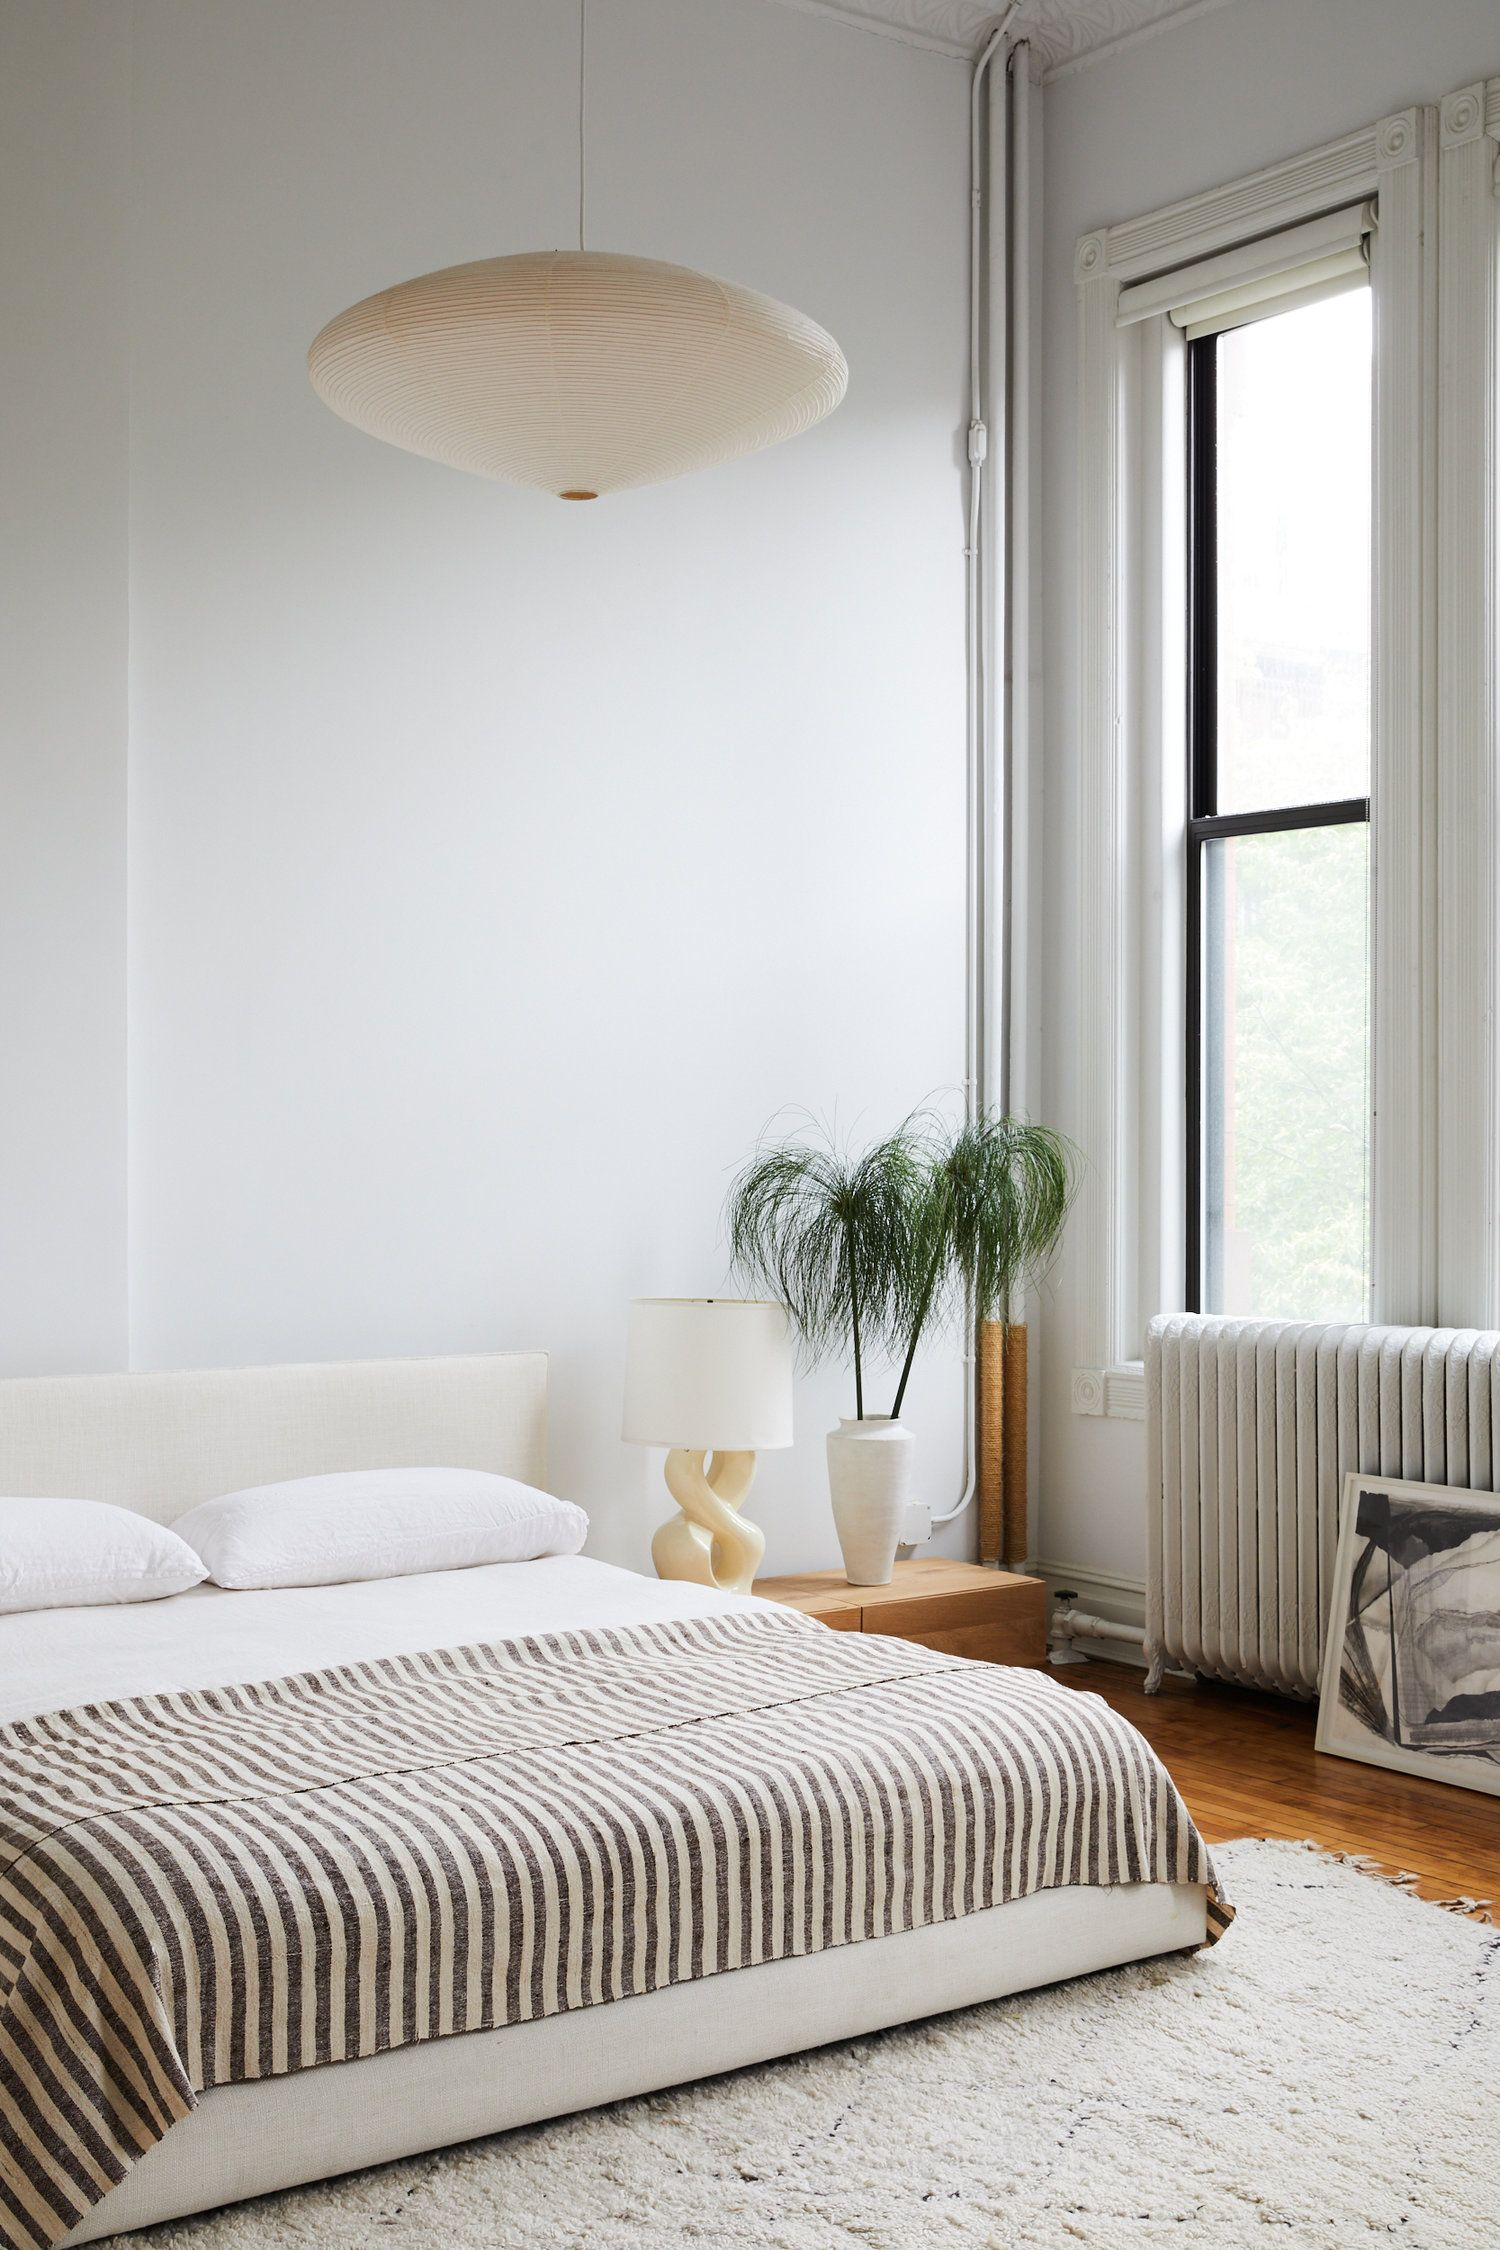 Modern Minimalist Bedroom With Pendant And Striped Comforter  #interiordesign #scandinavian #modernboho